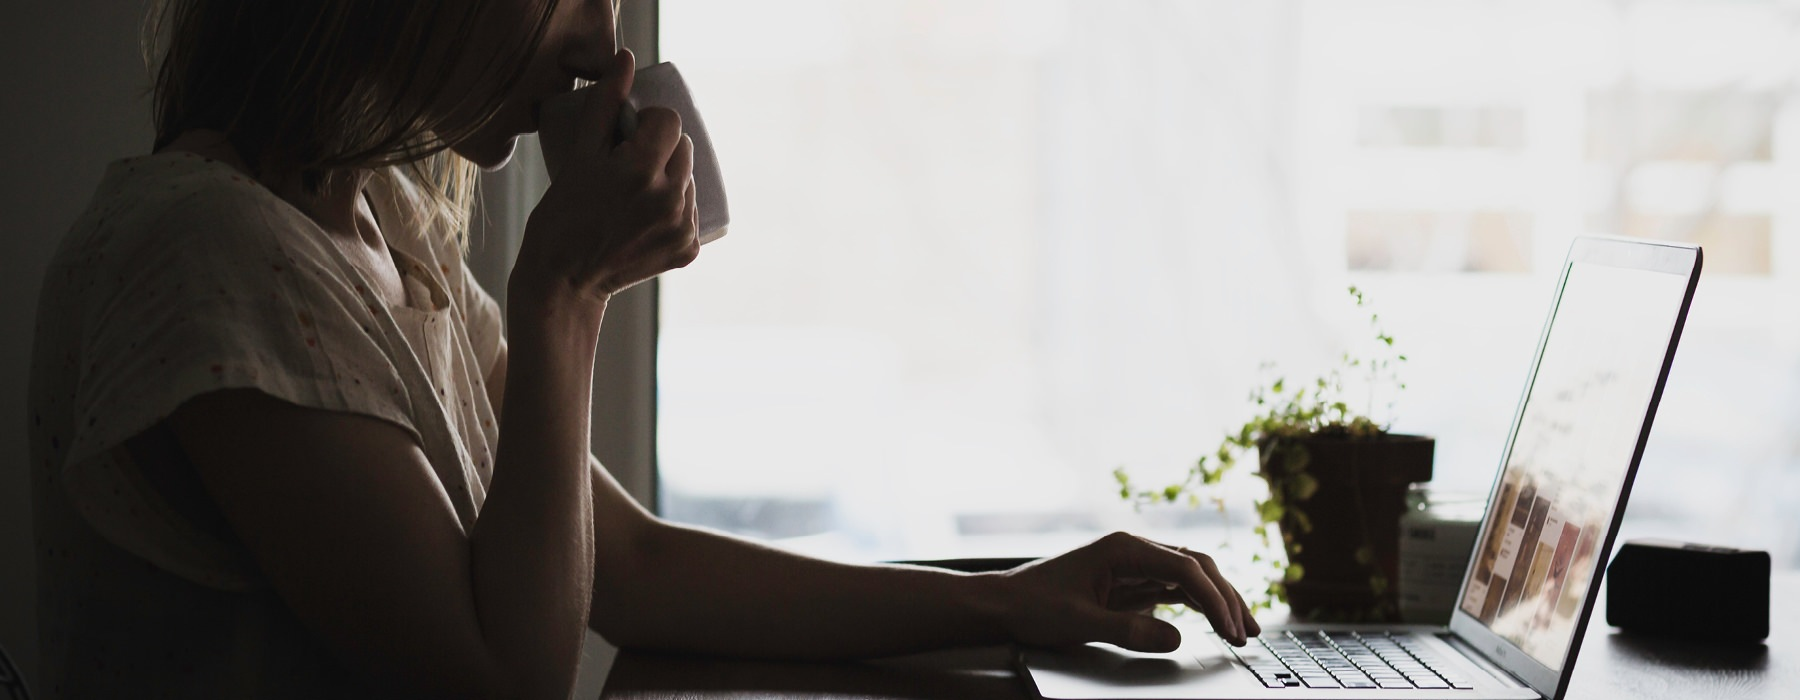 partially silhouetted woman sips coffee as she works, at her laptop, in front of large, bright window